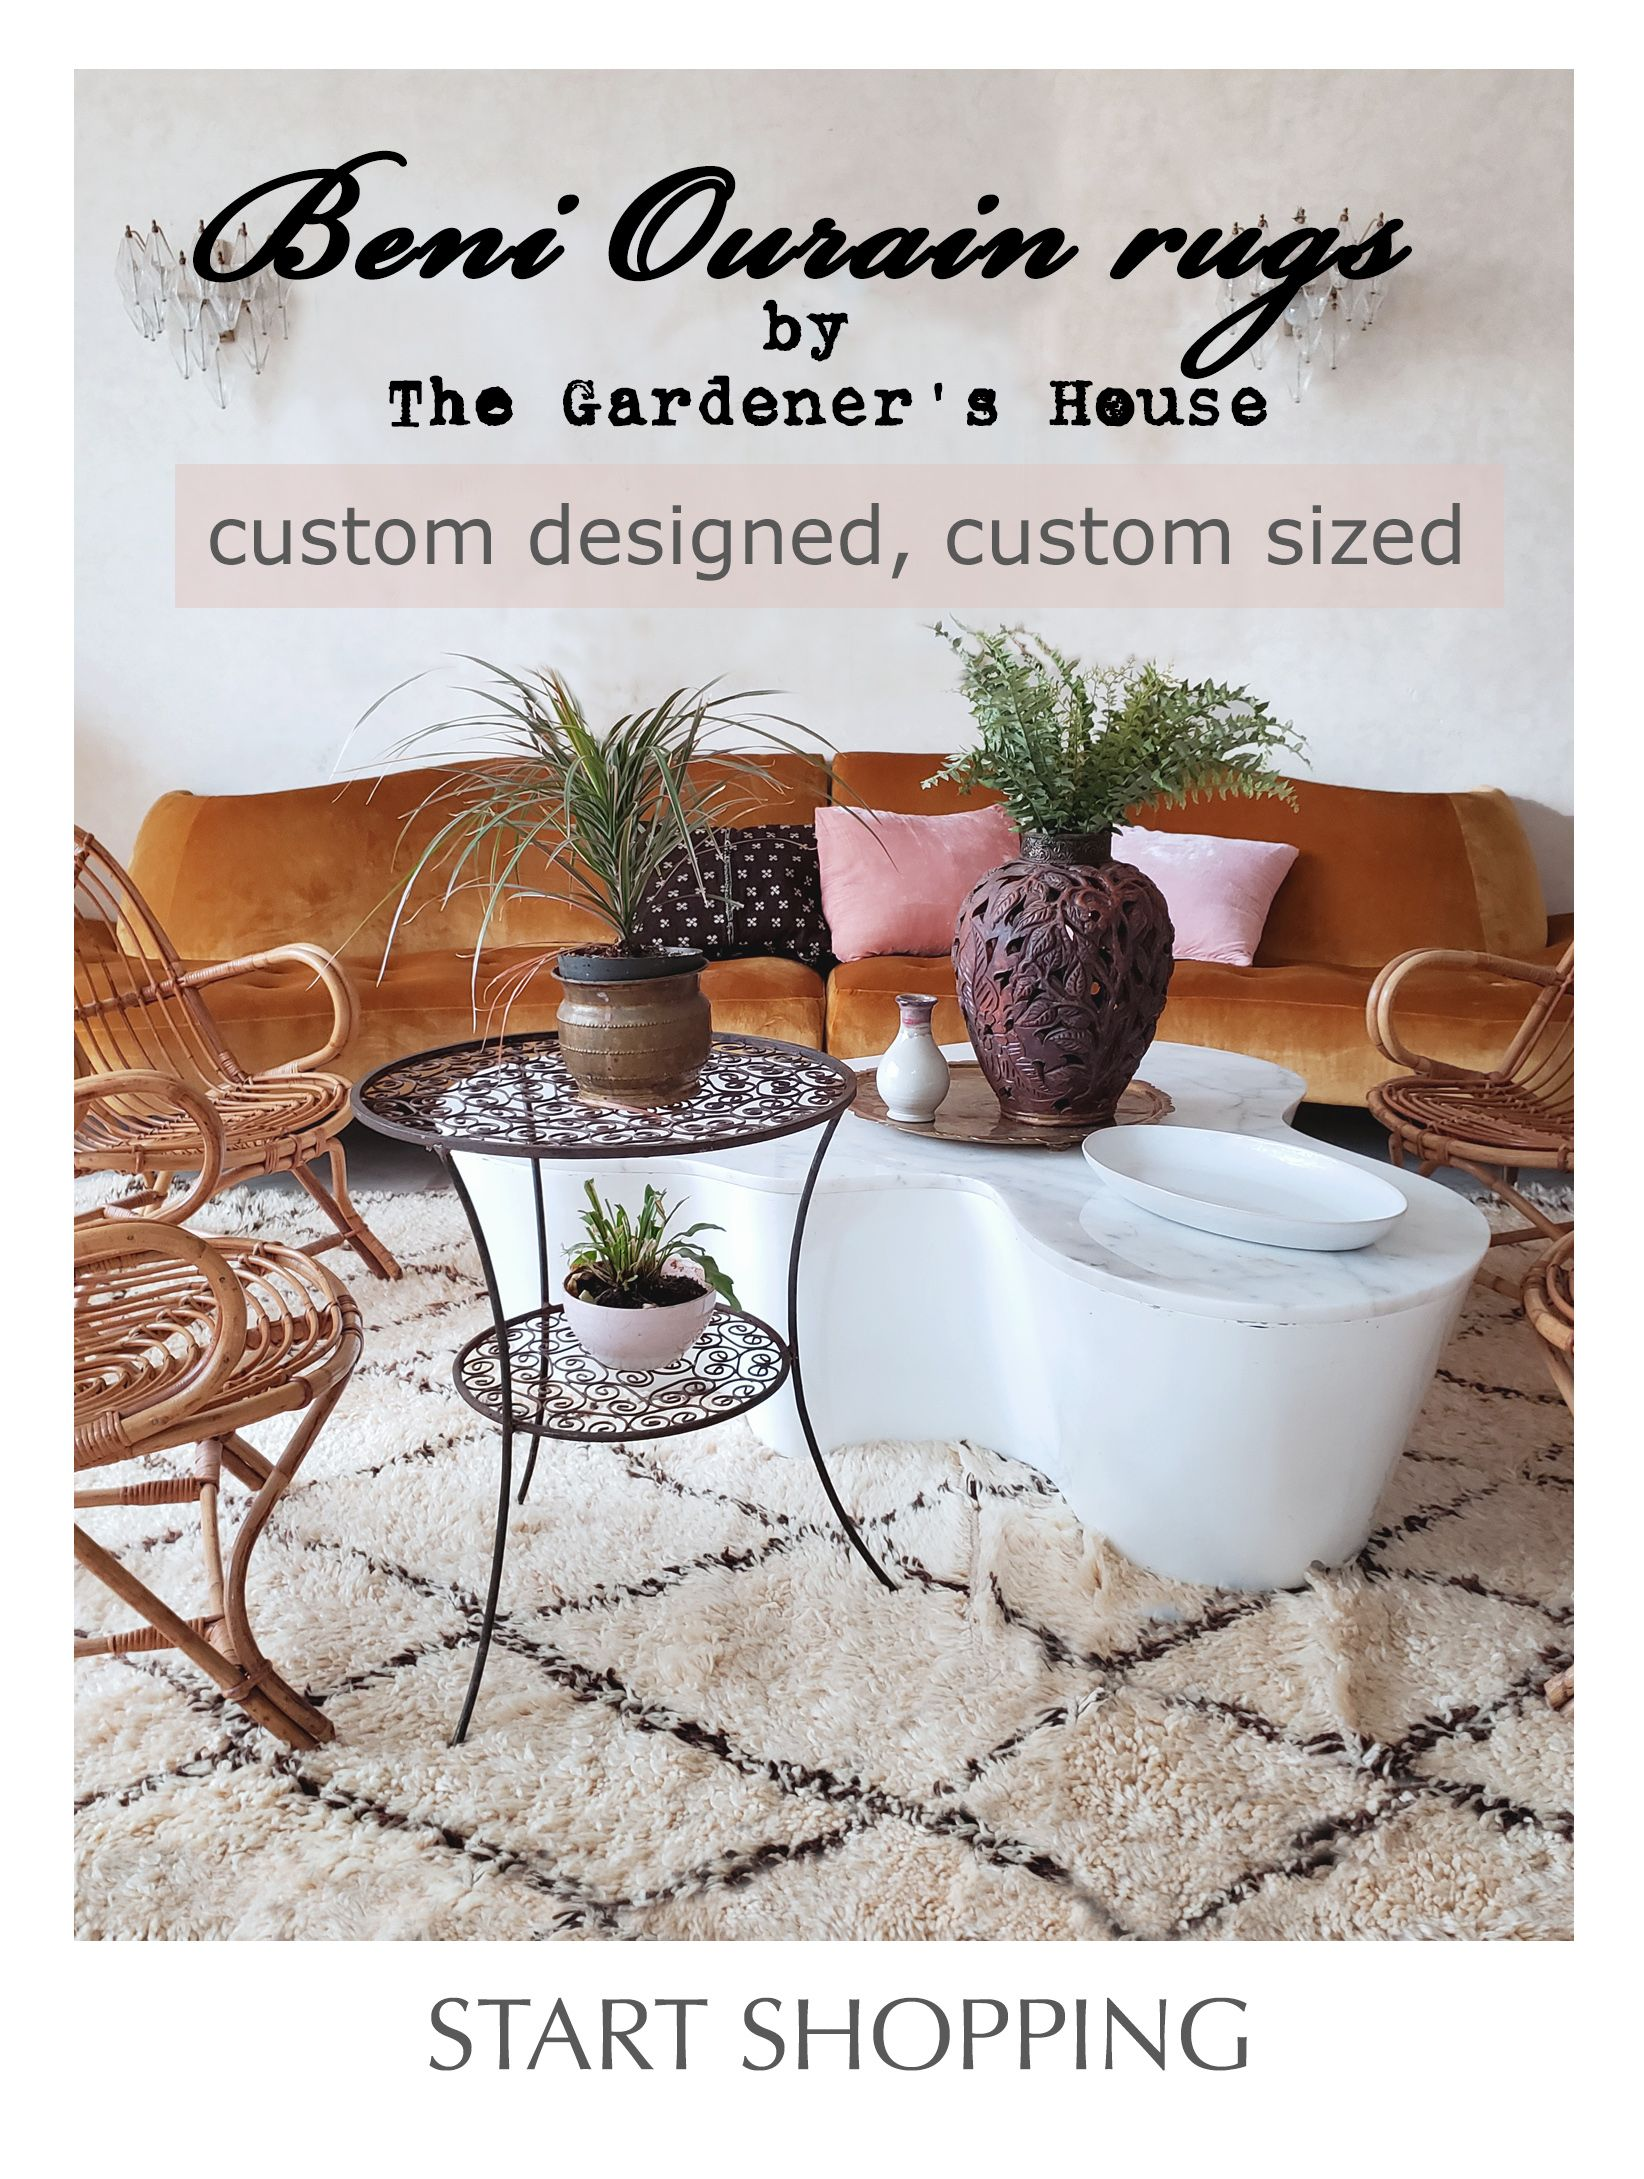 The Gardener's House thegardenershouse.com creates custom Beni Ourain rugs handwoven at the foot of the Beni Ourain mountains. You can choose your exact size and design, and we even have a few color choices. The perfect plush pile right here at The Gardener's House, Marrakesh. #beniourain #customrugs #beniourainrug #moroccanrug  #moroccanruglivingroom #moroccanrugbedroom #beniourainrugbedroom #beniourainlivingroom #beniourainruglivingroom #customsizerug #customsizerugs #custommaderugs #customrug